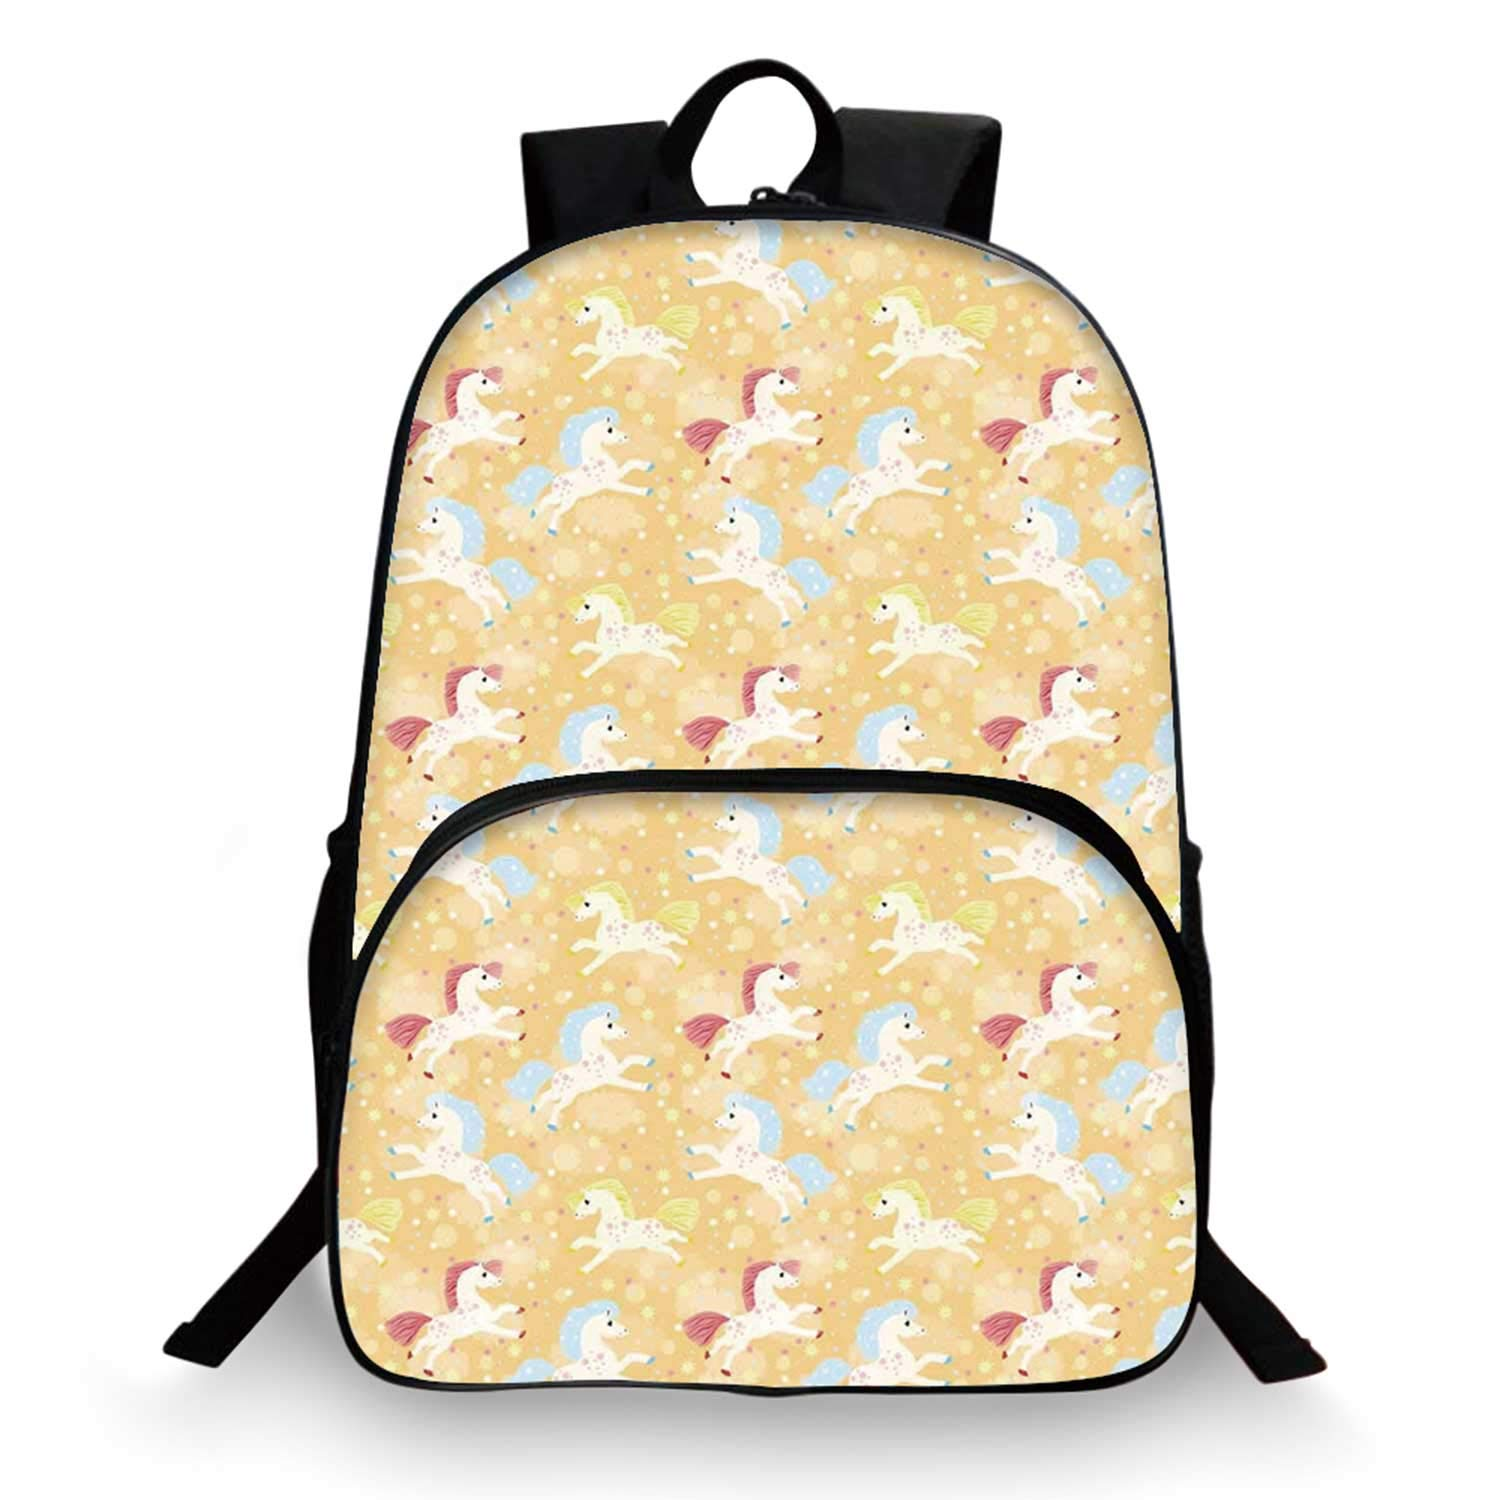 Kids Decor Various Schoolbag,Nursery Boys Girls Room Unicorns with Abstract Stars Light Salmon Backdrop Image for student,11''Lx6''Wx15''H by C COABALLA